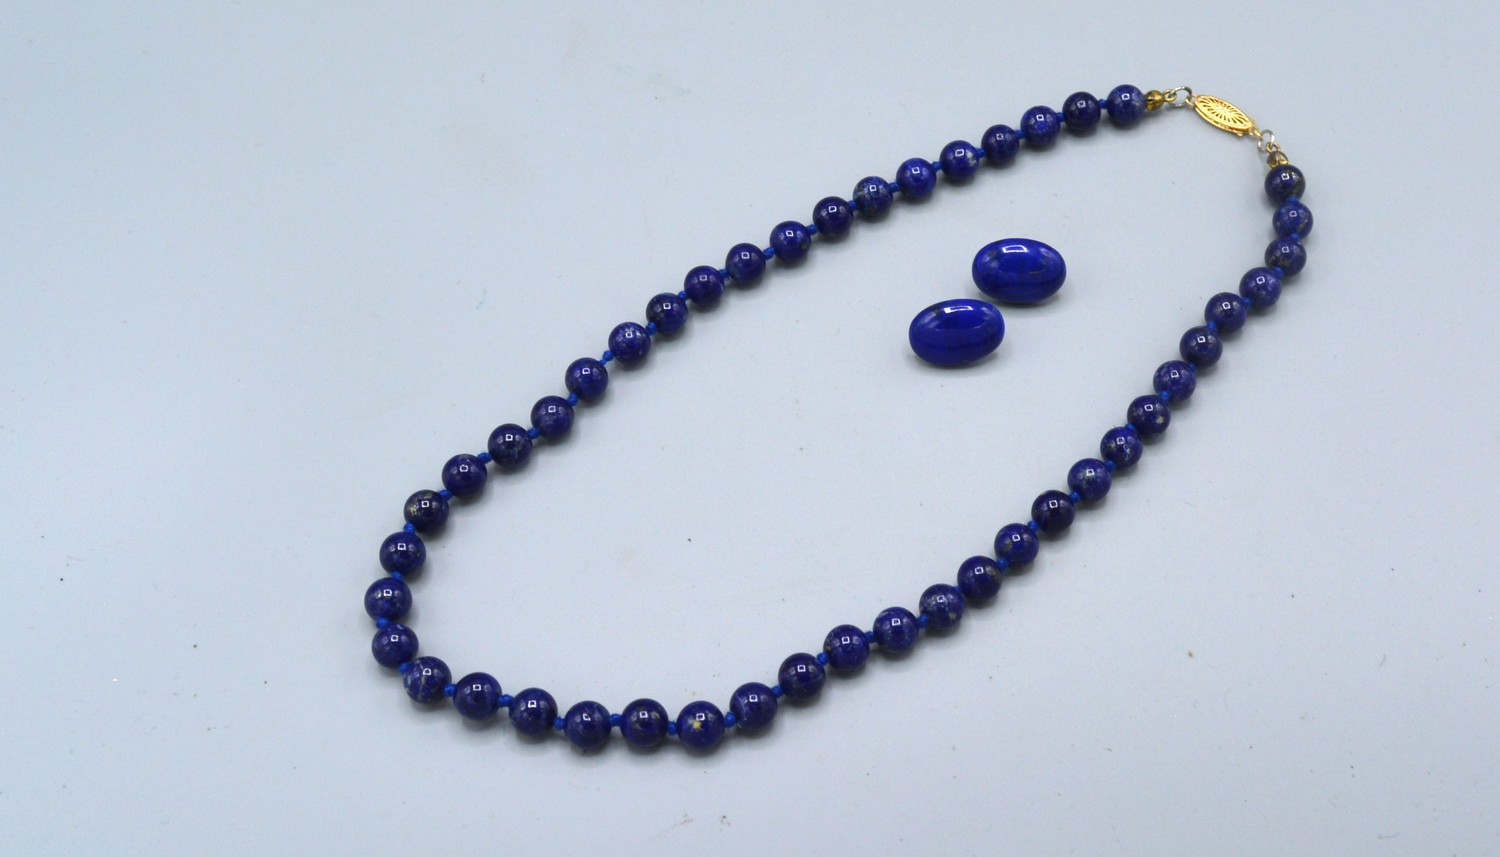 A blue stone bead necklace with 14ct gold clasp together with a similar pair of ear studs